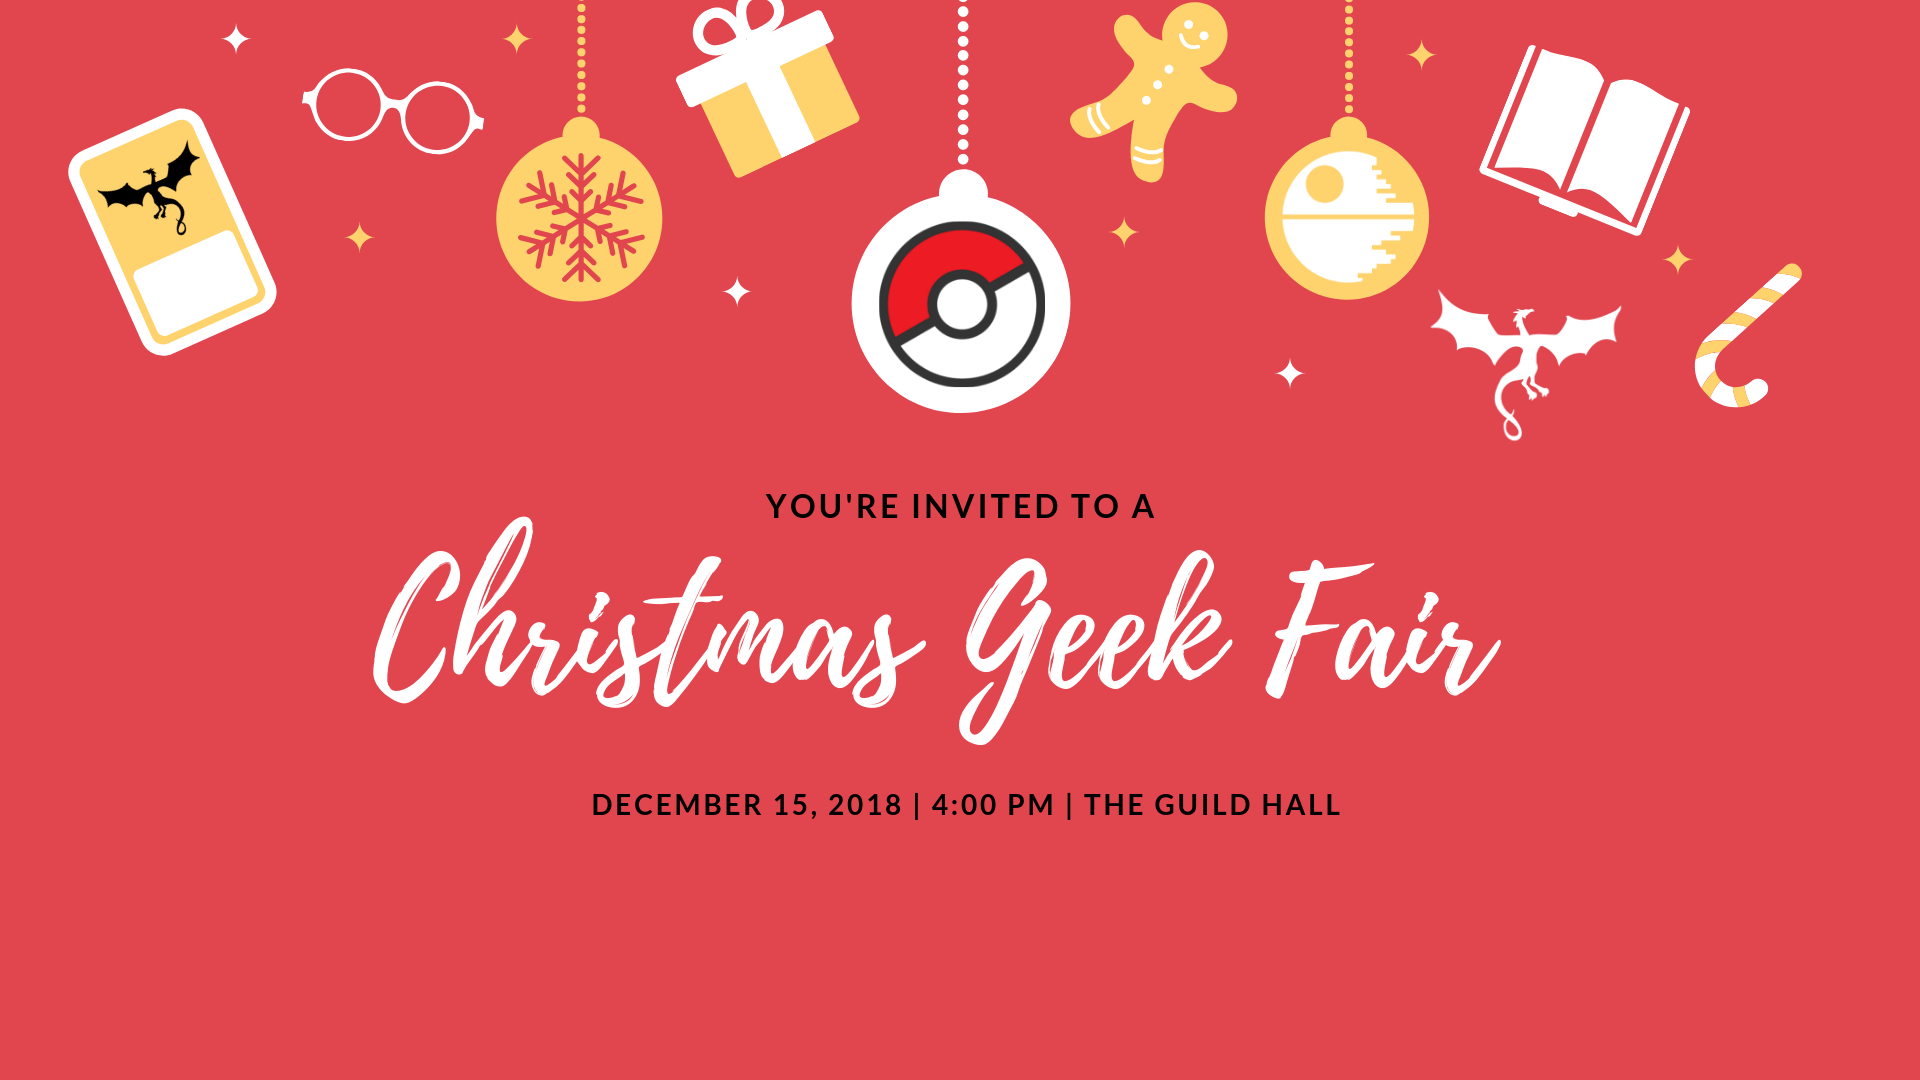 Christmas Geek Fair